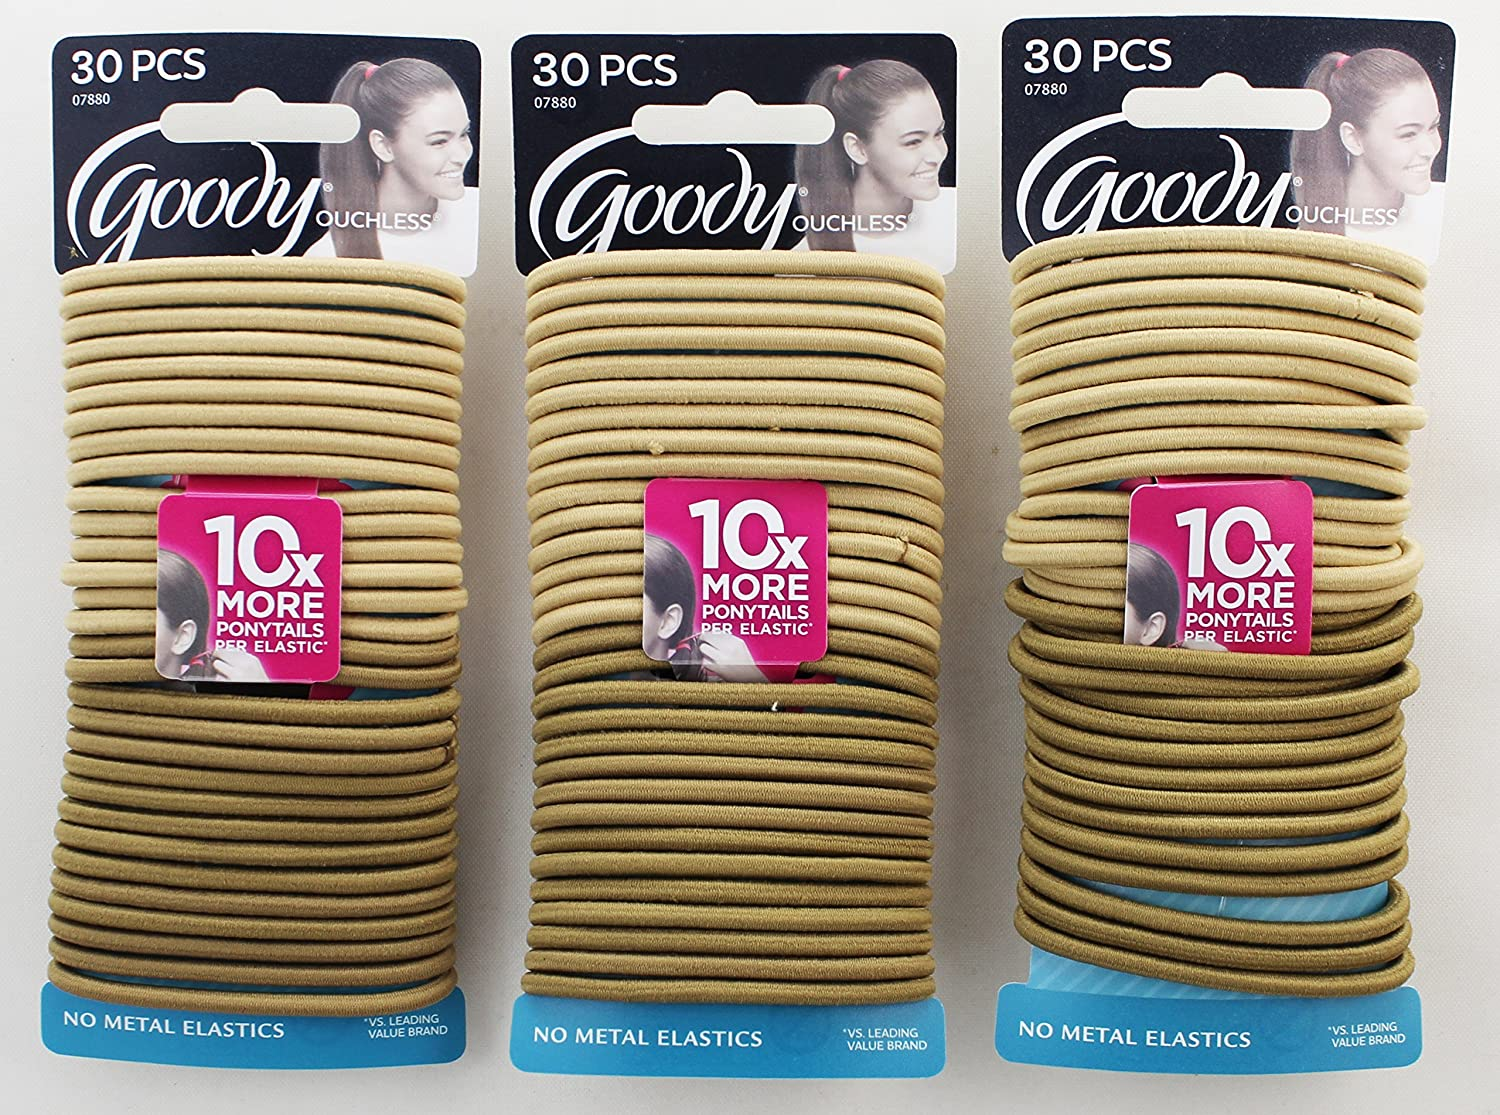 Goody Blonde OFFicial San Francisco Mall site Elastics 30 3 Pack of Count